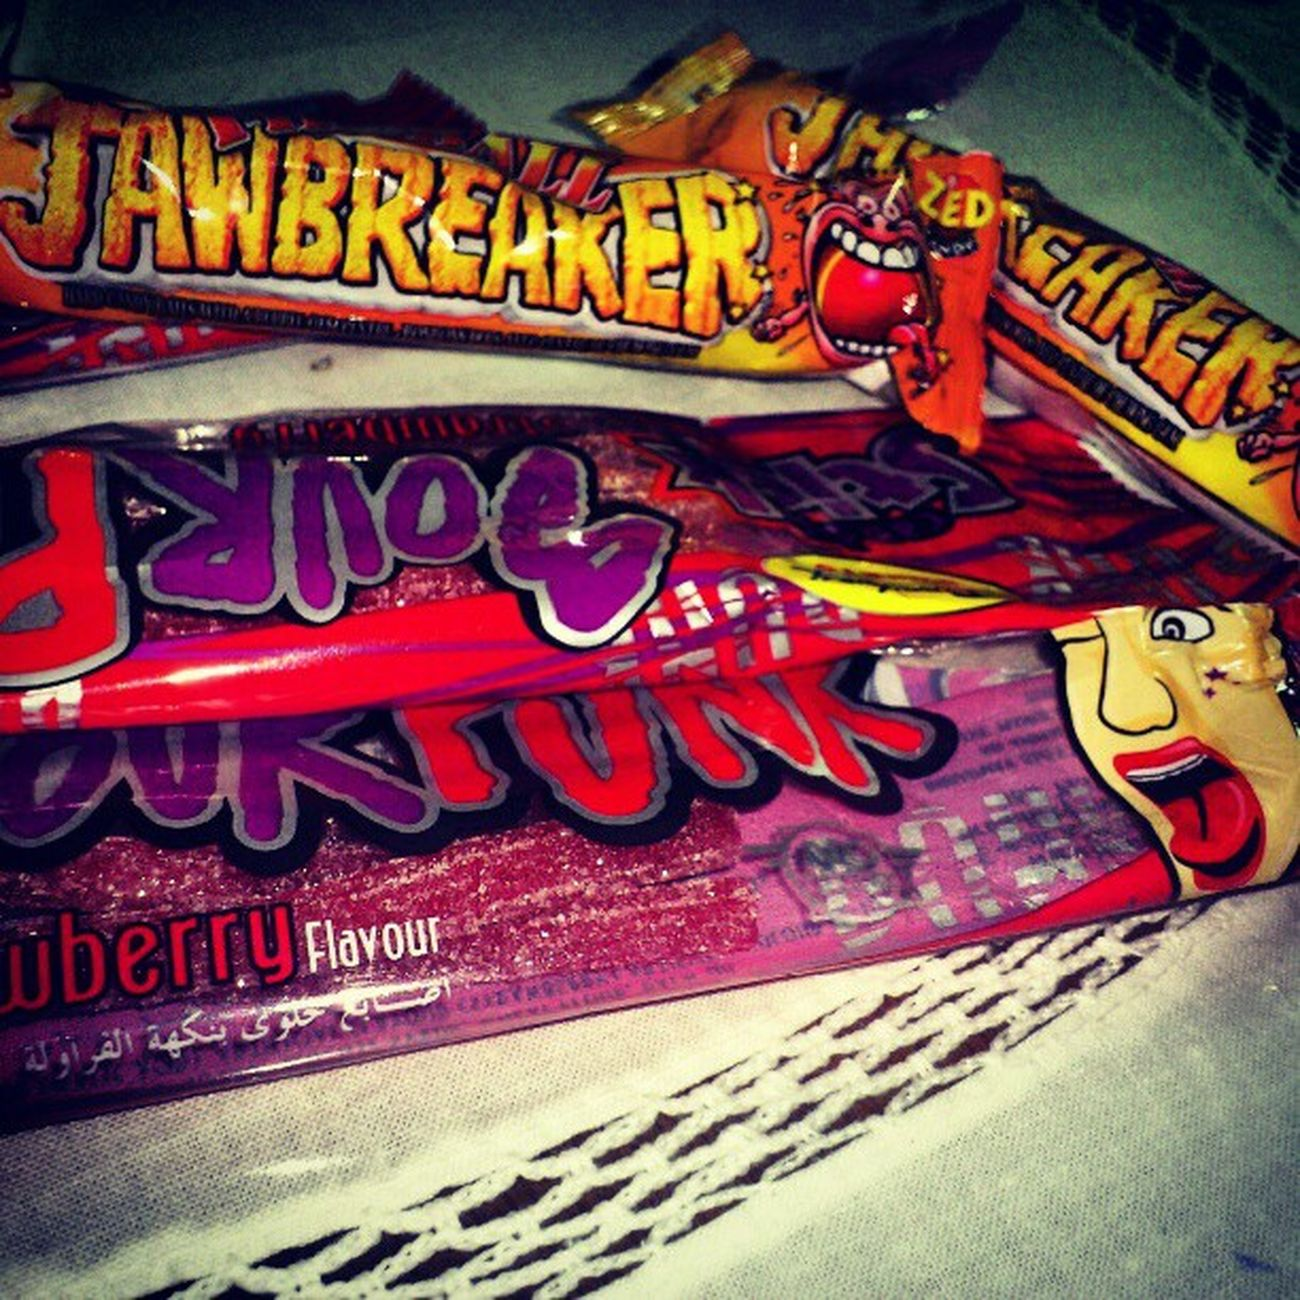 Sourpunk And Jawbreaker ........ :D